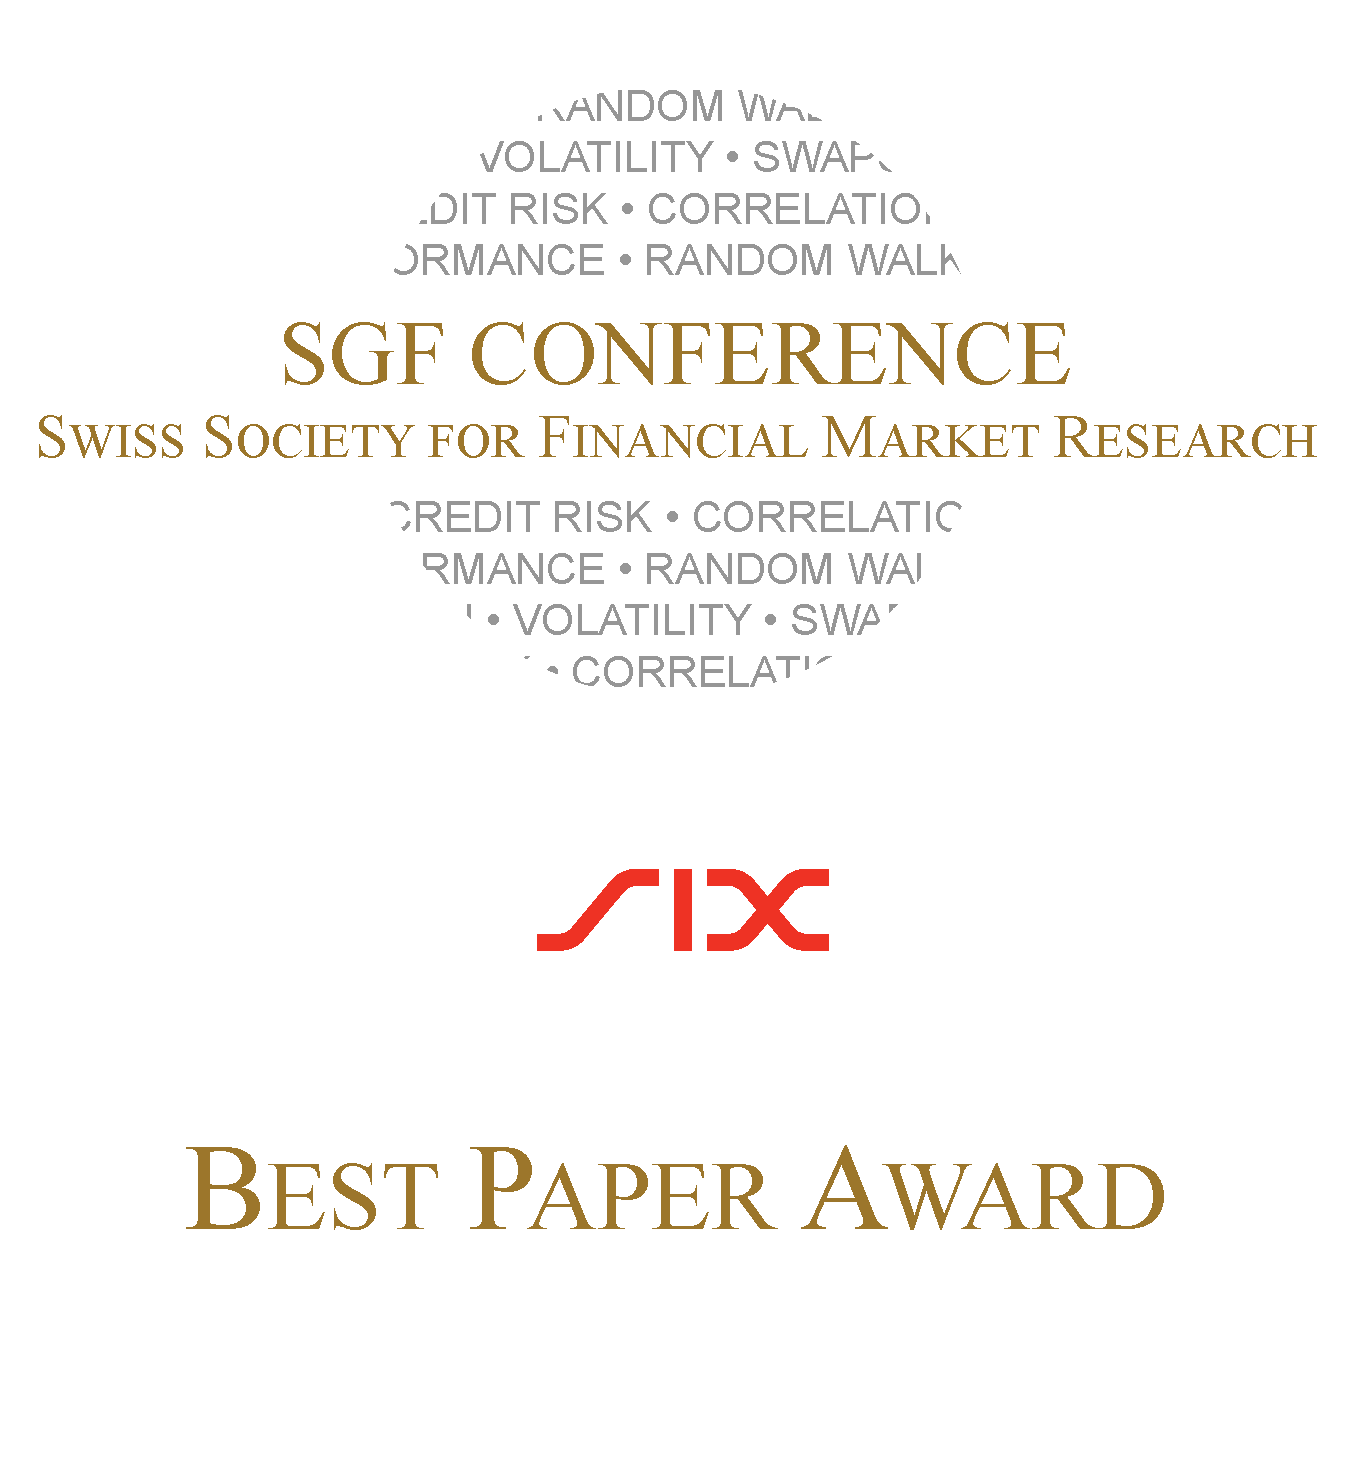 SGF Best Paper Award Tombstone